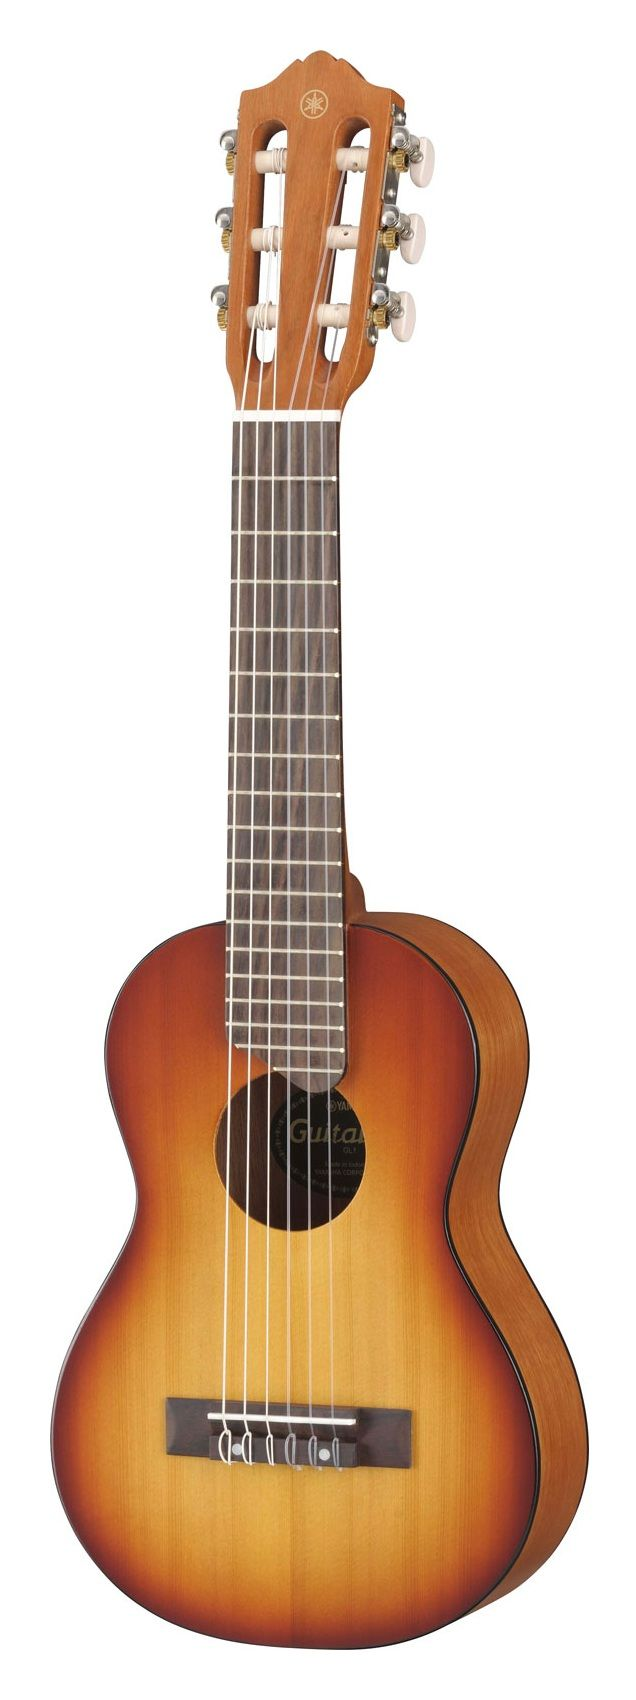 Yamaha GL1 Guitalele (Tobacco Sunburst), a classical guitar/tenor ukelele hybrid I bought on a whim. I tuned it to Open A Minor instead of the suggested AEGBEA tuning and tried it out with a slide and without. Not bad for around $70. :)